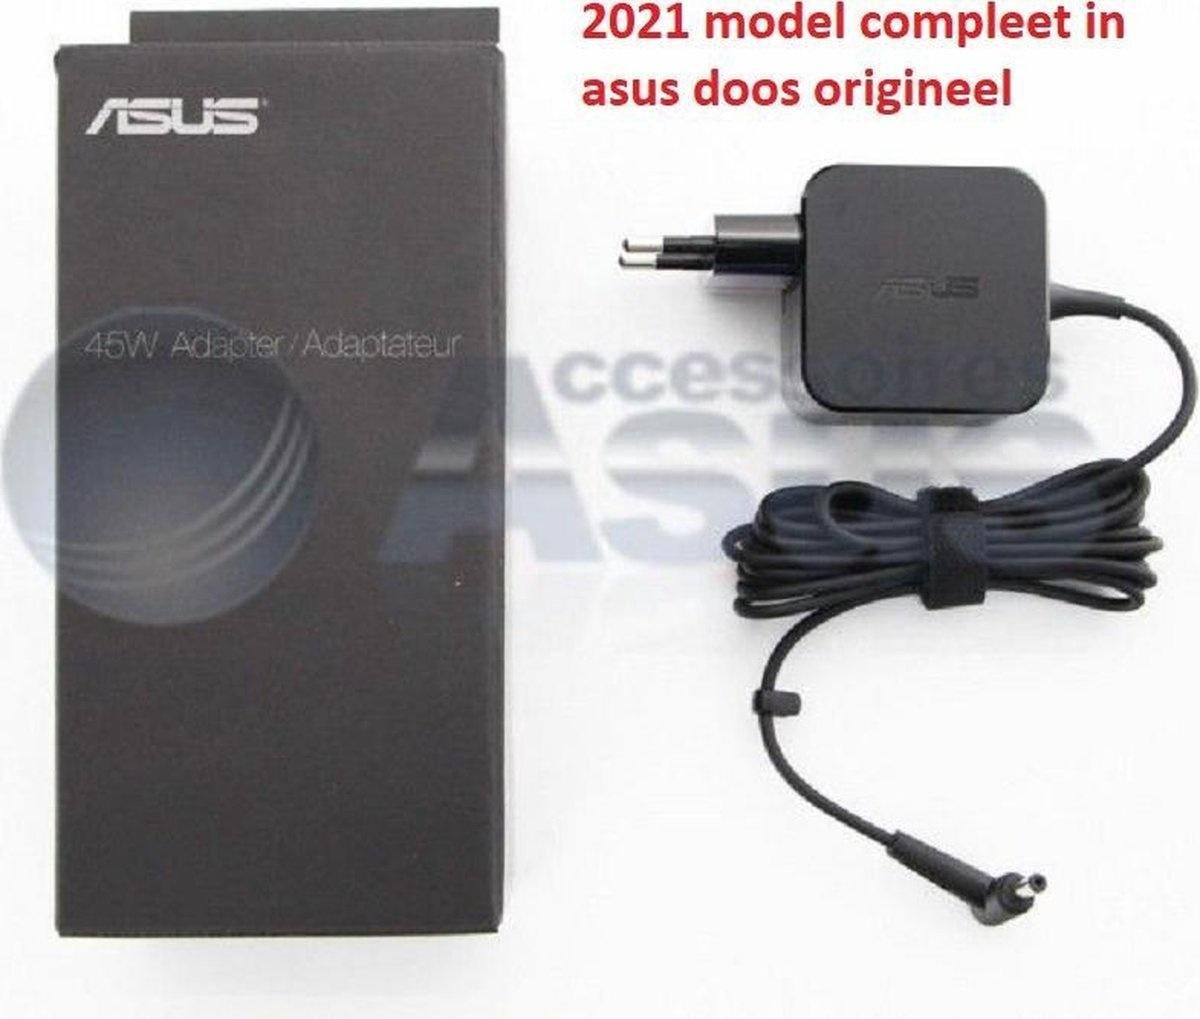 ASUS adapter 2.37a 45w 19v adapter 4mm voeding oplader